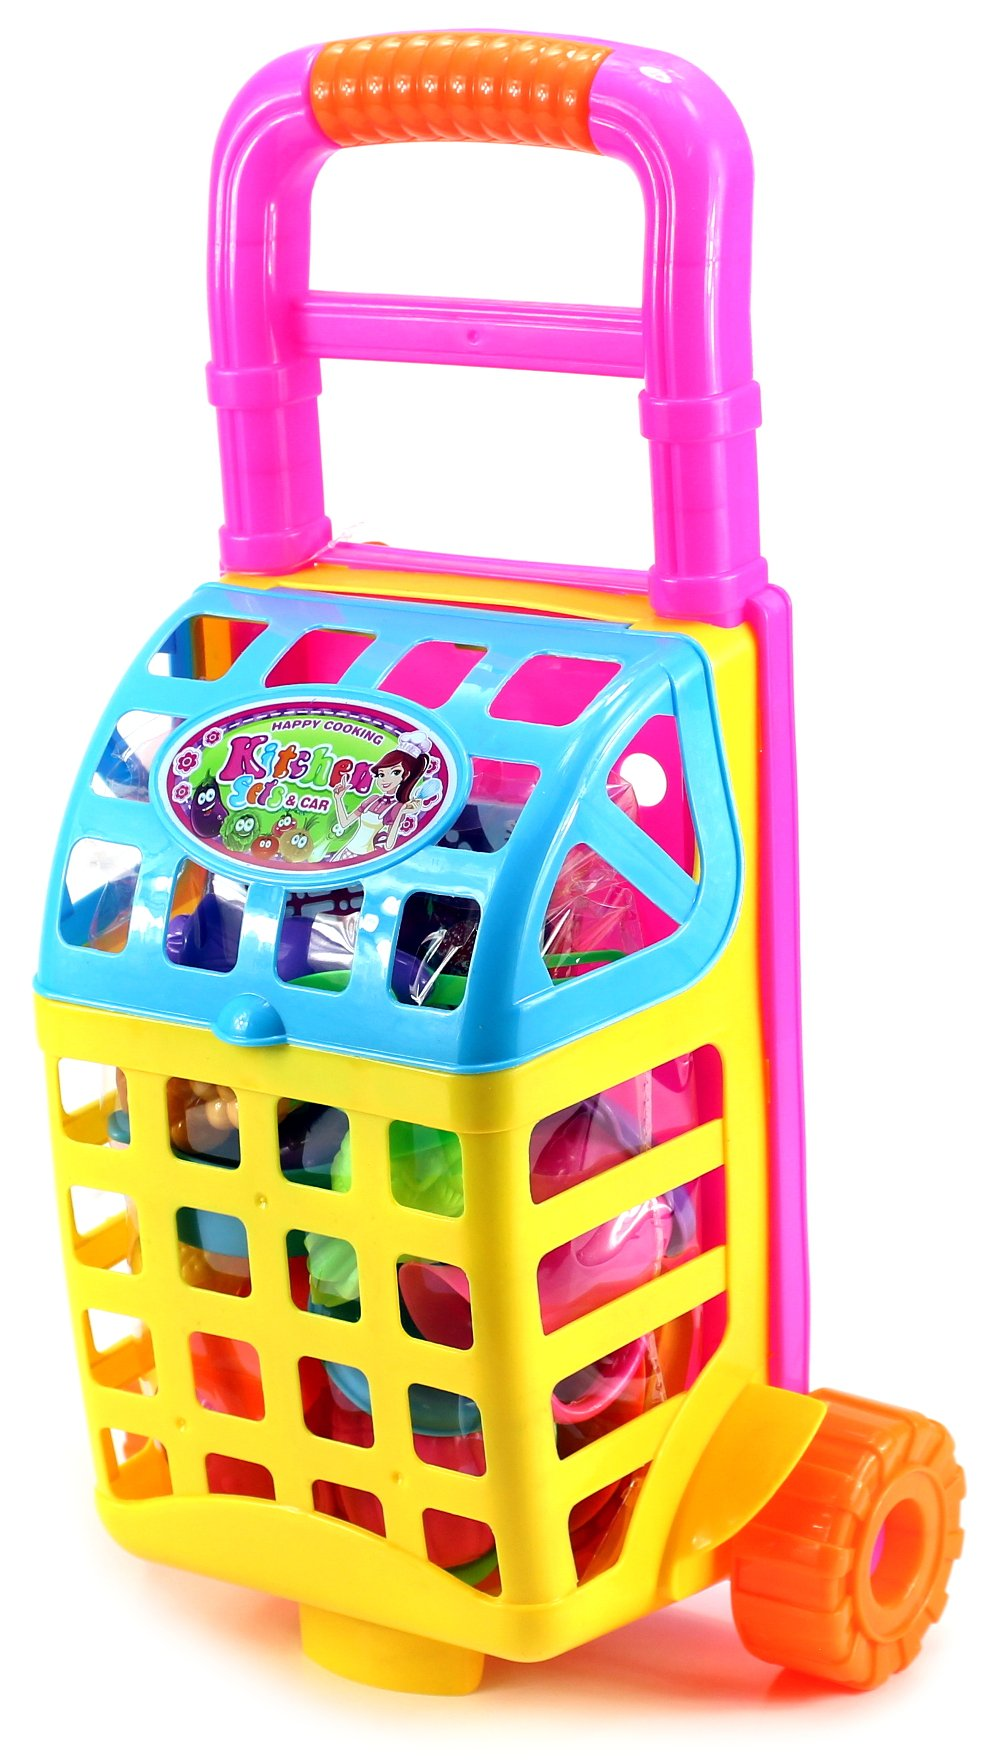 Happy Cooking Shopping Cart Children's Kid's Toy Food Play Set w/ Shopping Cart, Toy Stove, Utensils, Food (Colors May Vary)